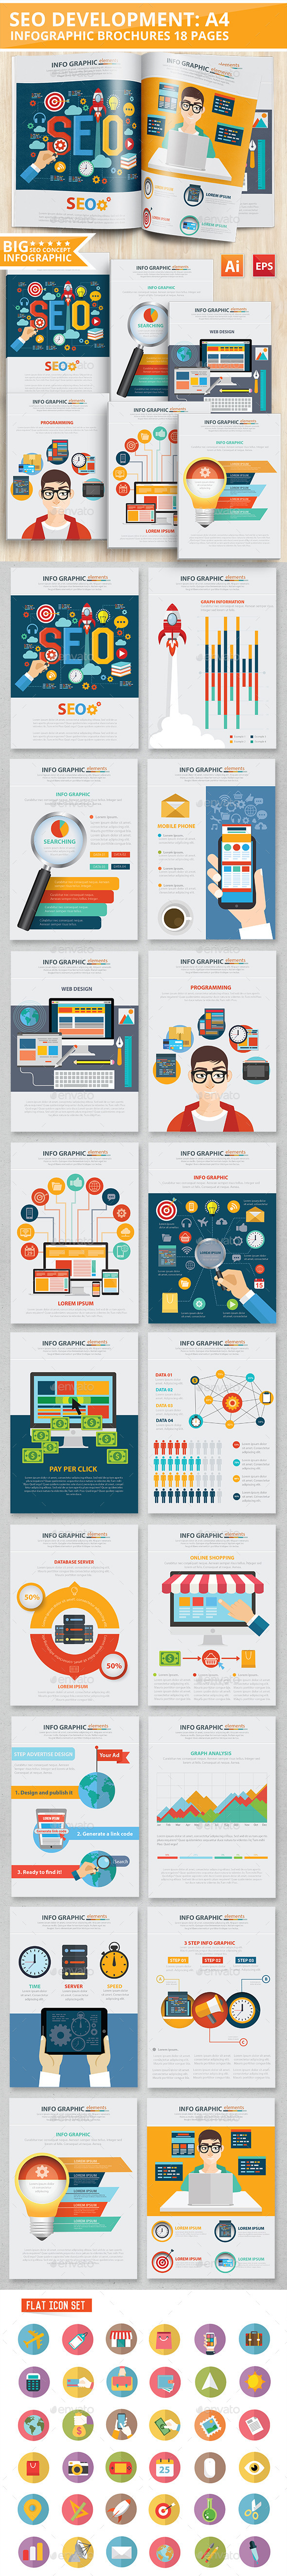 SEO Development Infographic Design 18 Pages - Infographics